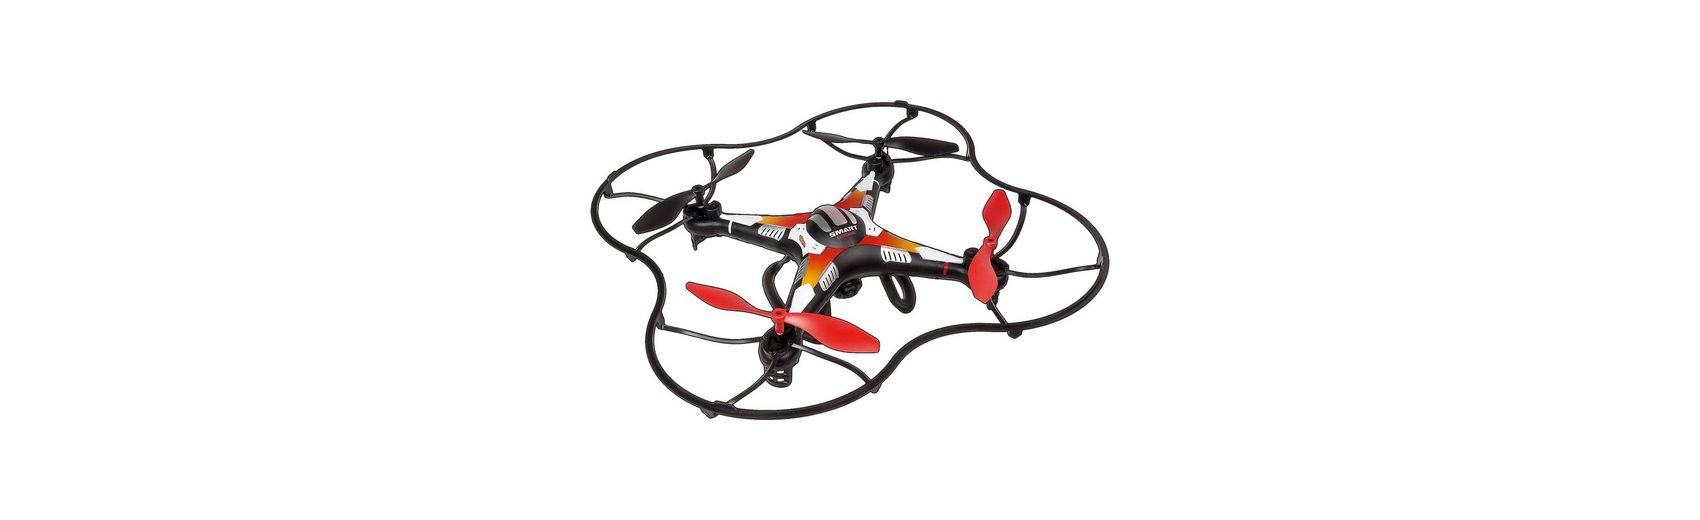 Silverlit RC Quadrocopter Gear2Play Smart Drone 2,4 GHz mit Kamera und